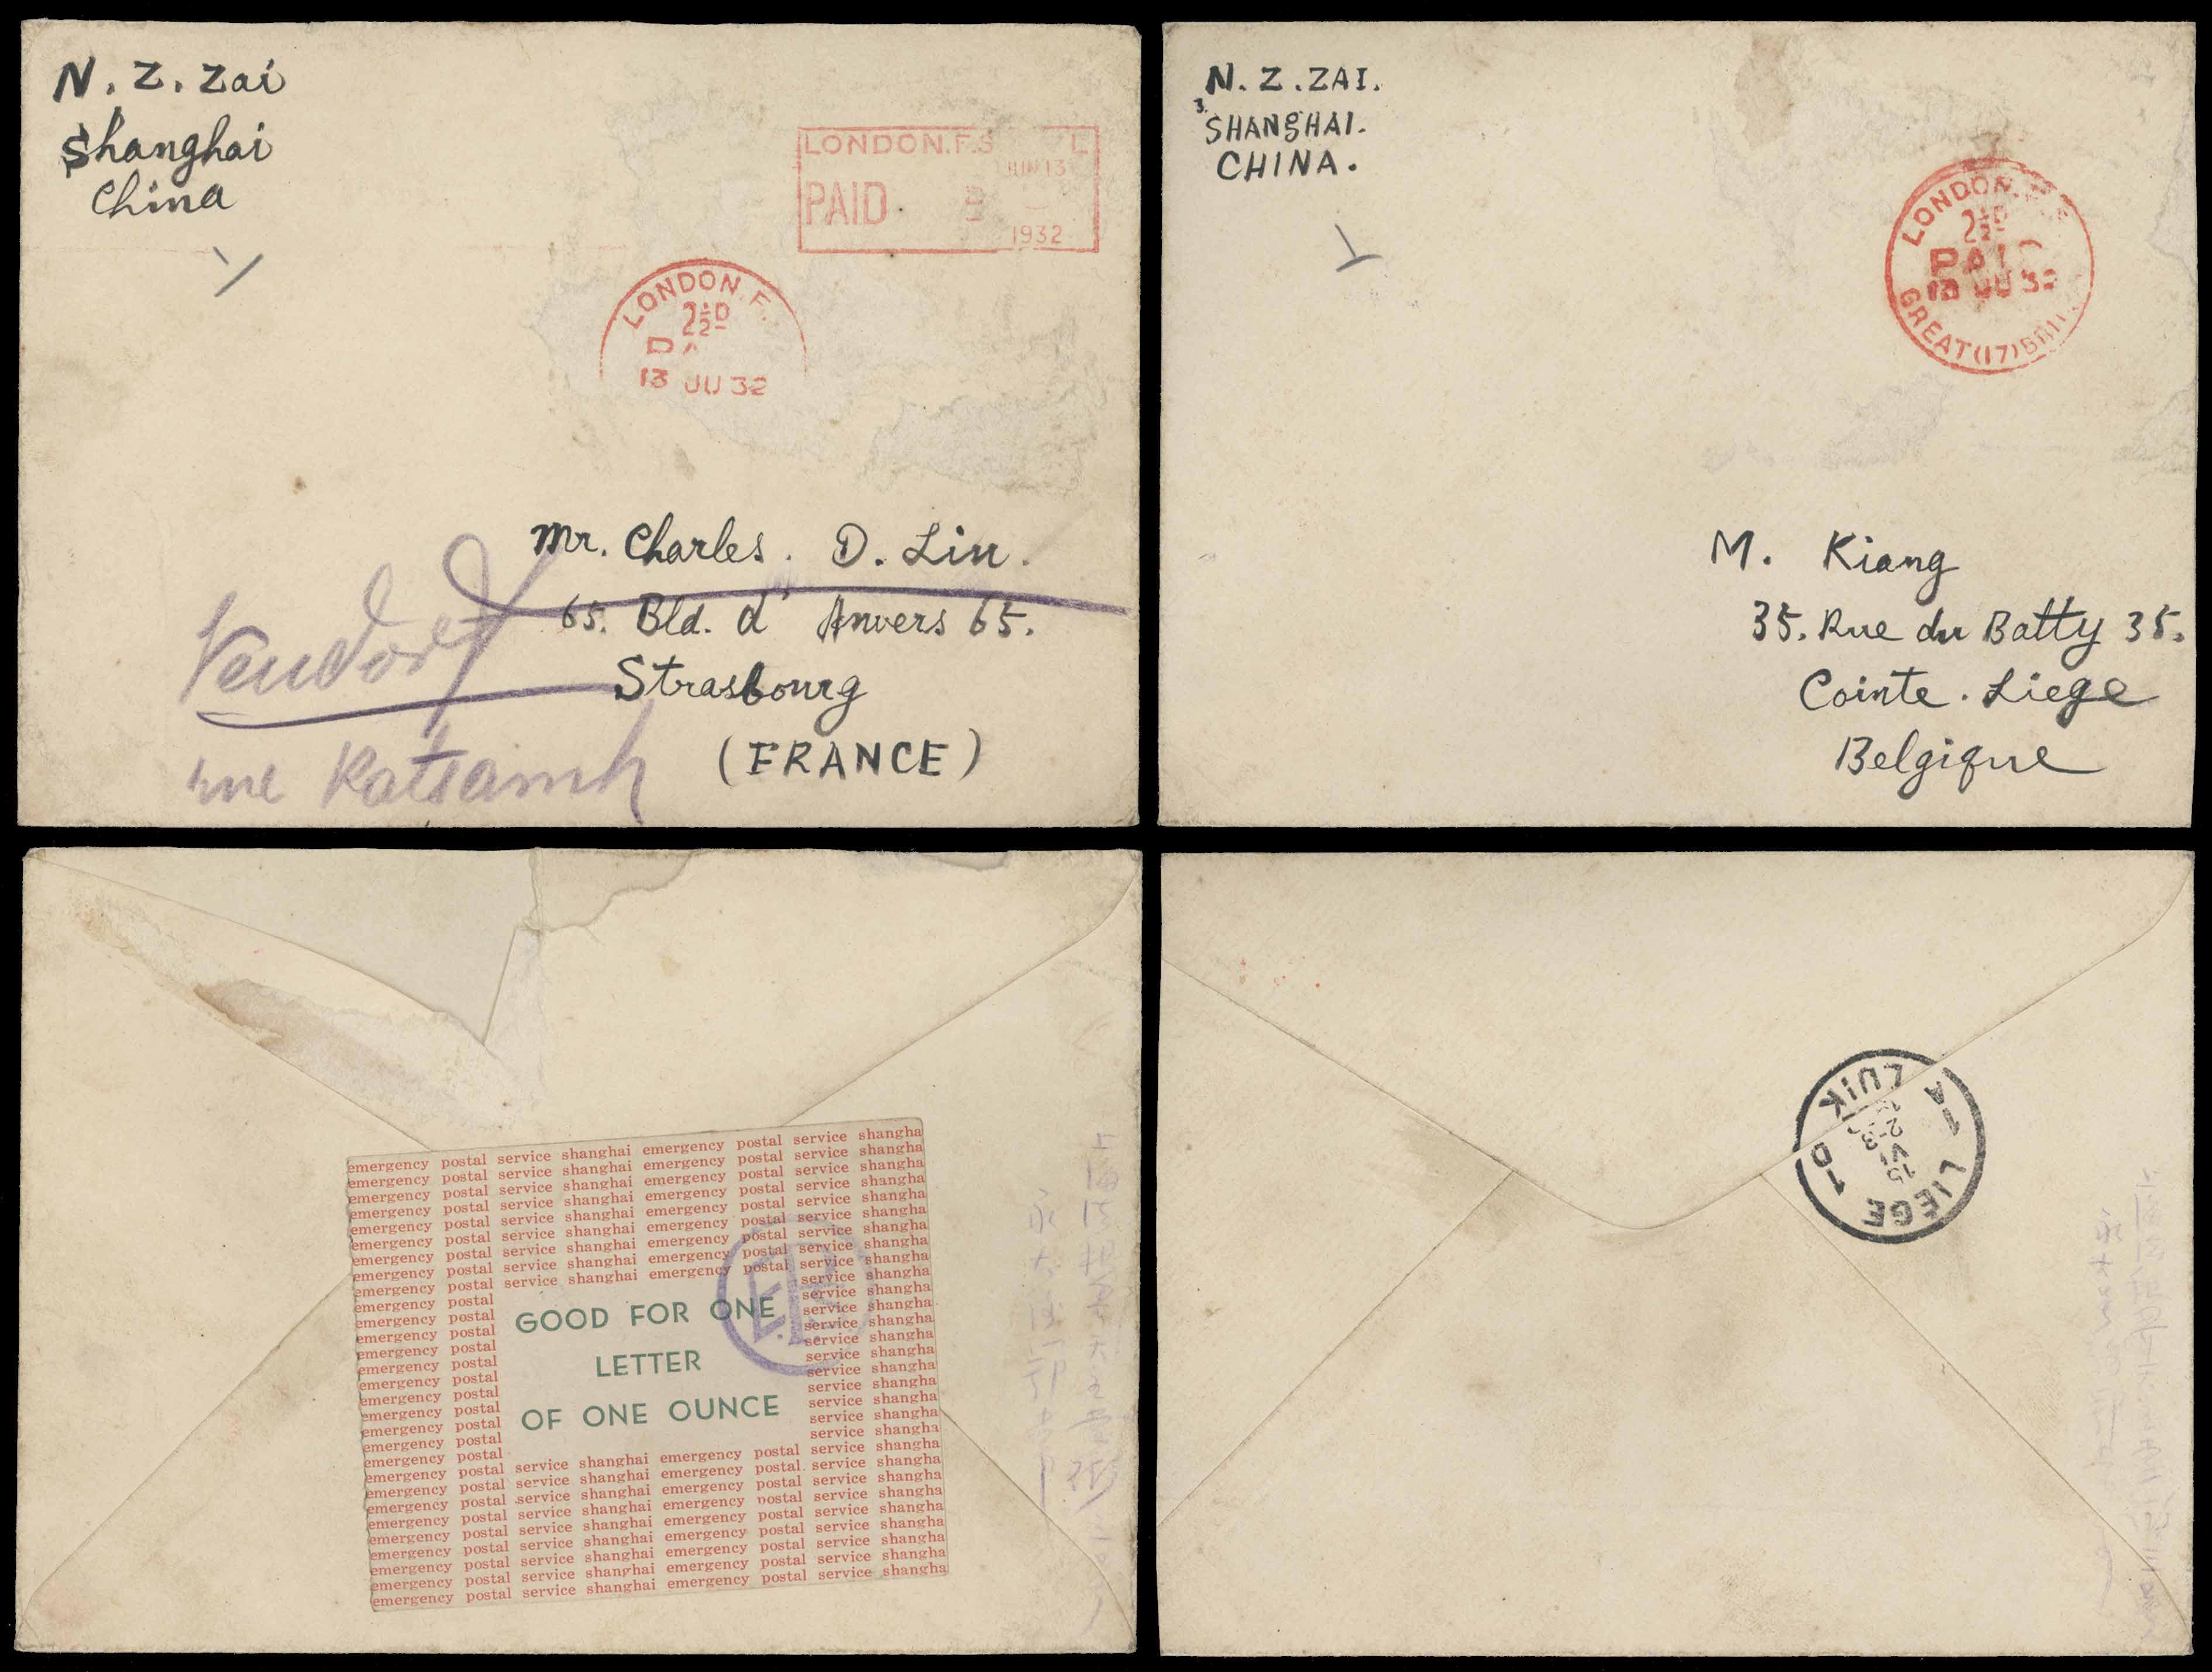 Shanghai Emergency Postal Service 1932 - the Scouting Connection